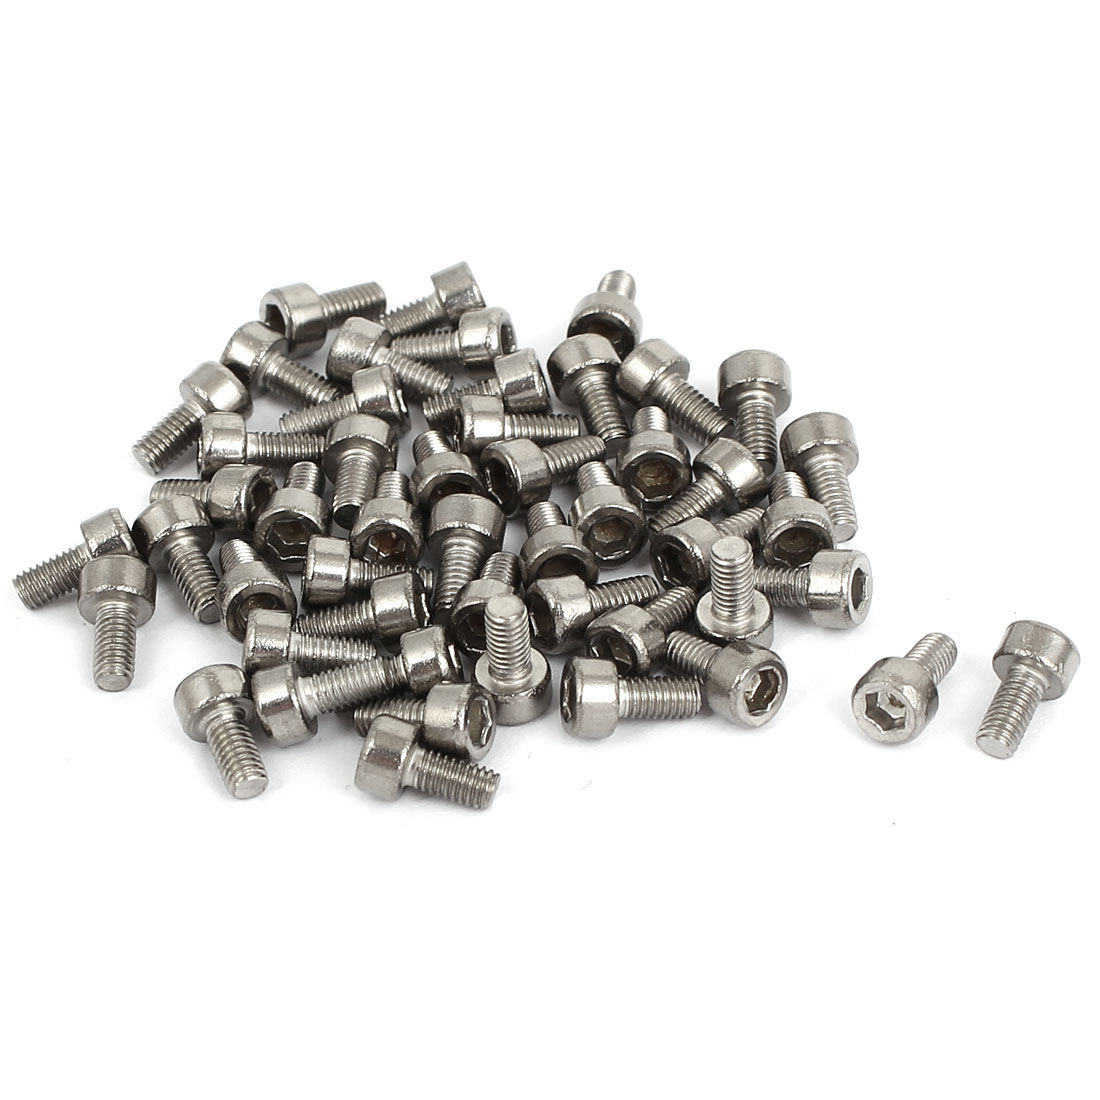 50pcs 2.5mm Stainless Steel Hex Key Socket Head Cap Screws Bolts M3x0.5mmx6mm